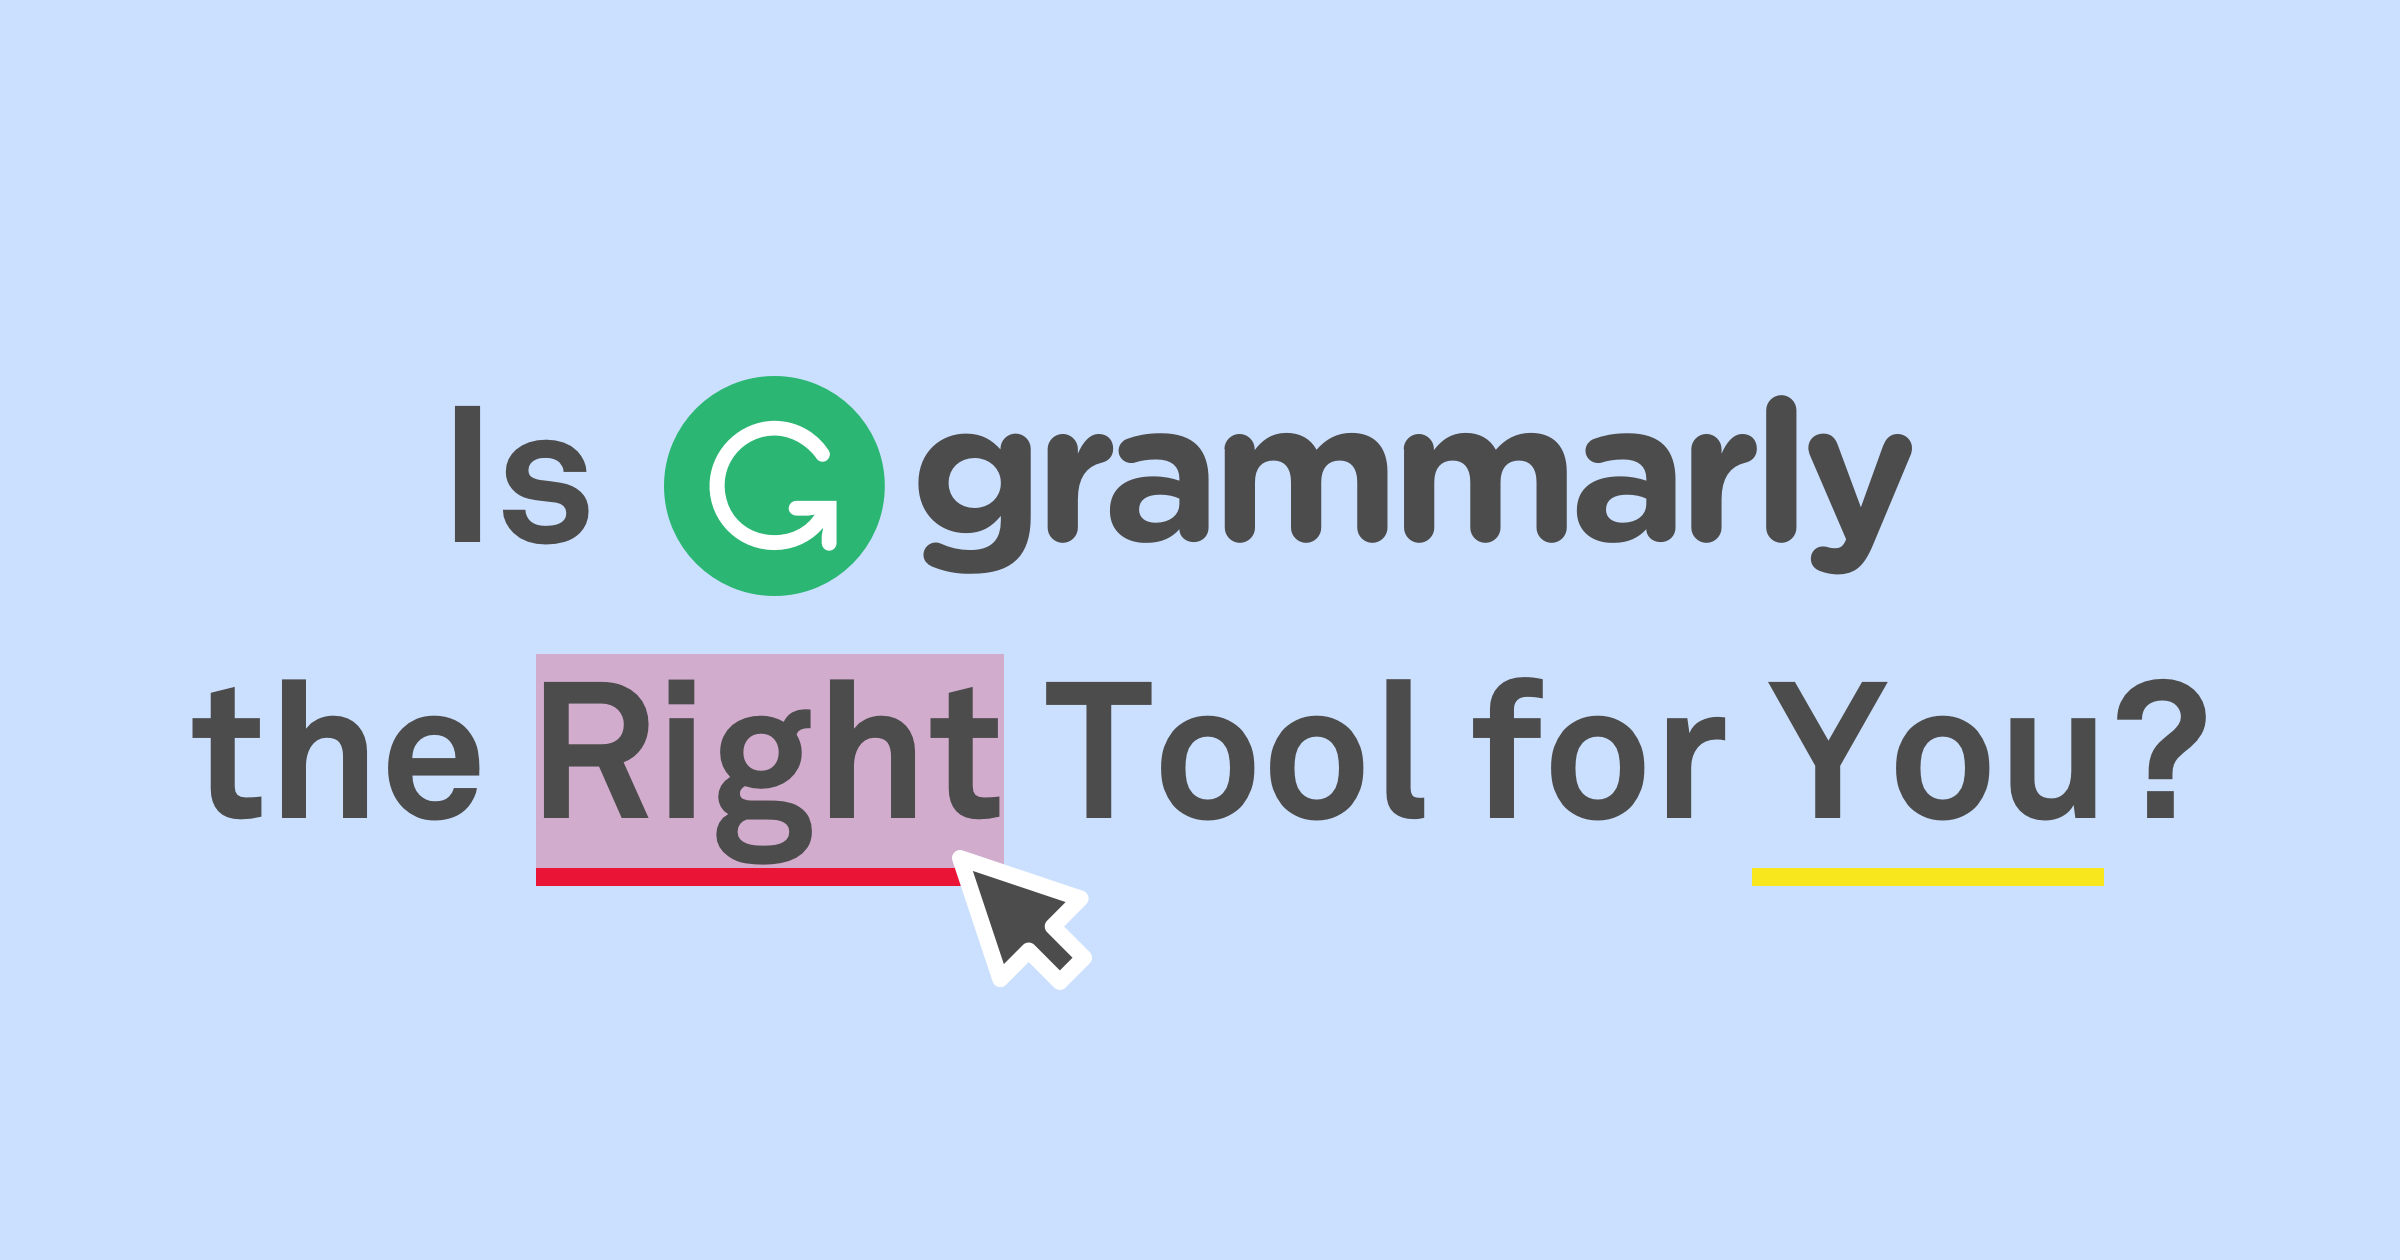 Things Like Grammarly